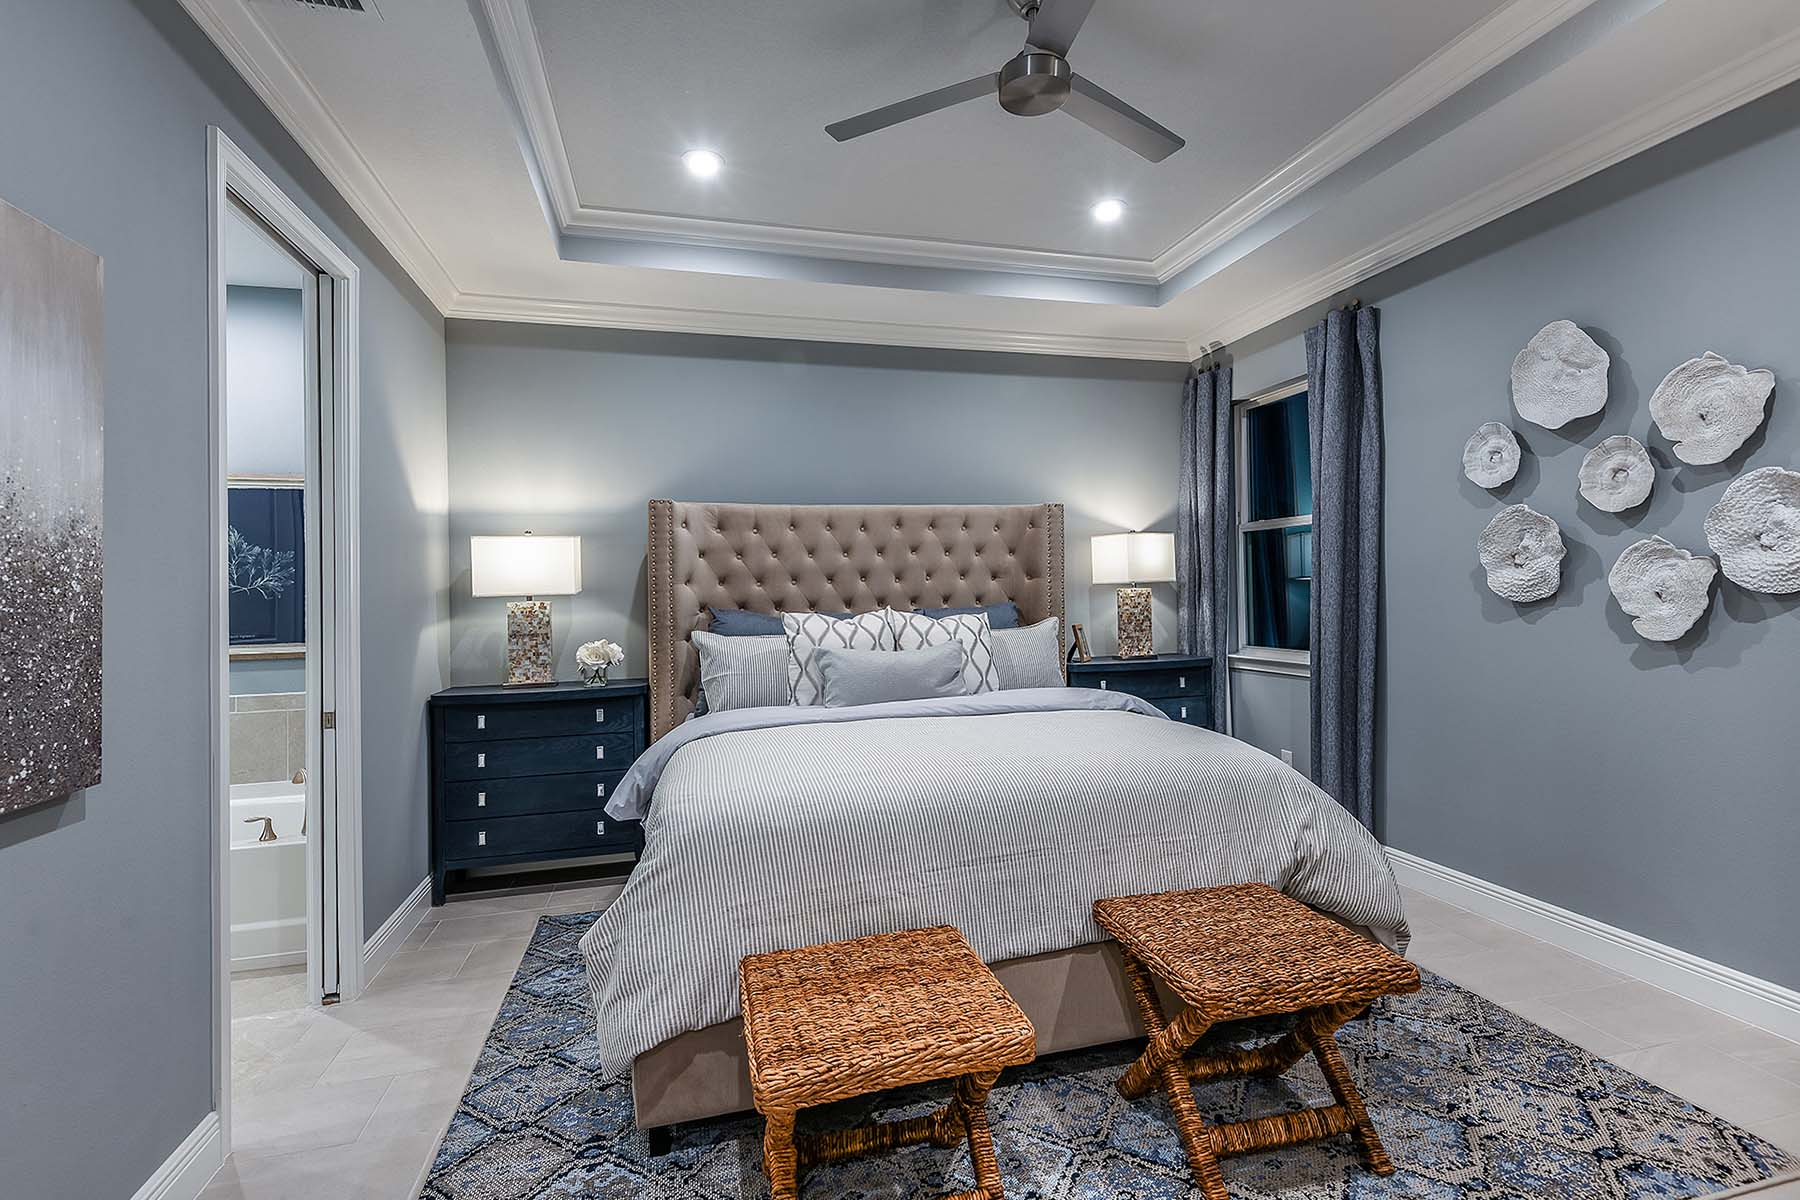 Oceana Plan Bedroom at Bonavie Cove in Fort Myers Florida by Mattamy Homes